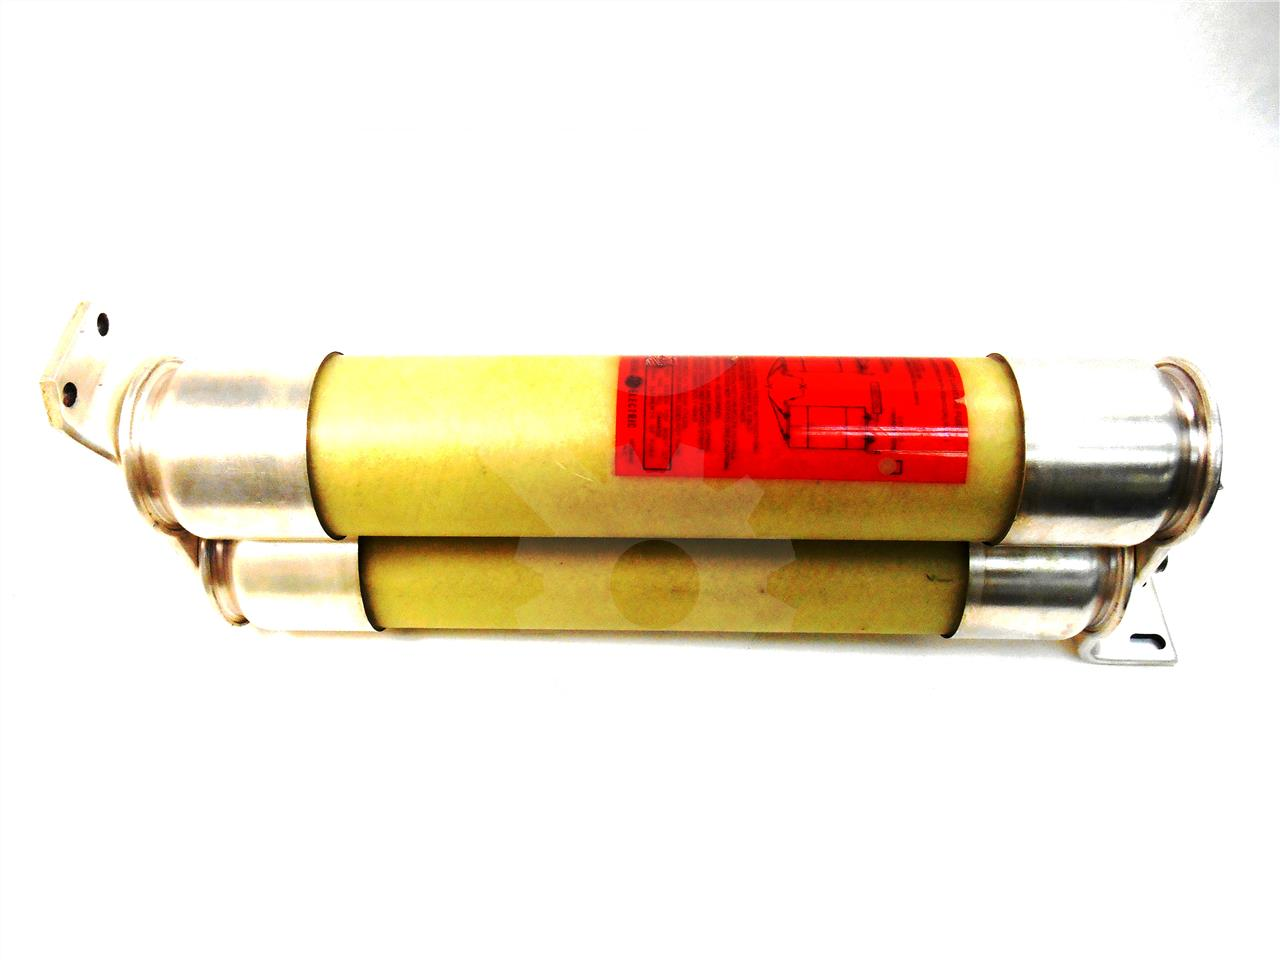 218A4293P18RB 18R GE / General Electric POWER FUSE 5KV R RATED 390A MOTOR STARTER FUSE, BOLT ON STYLE